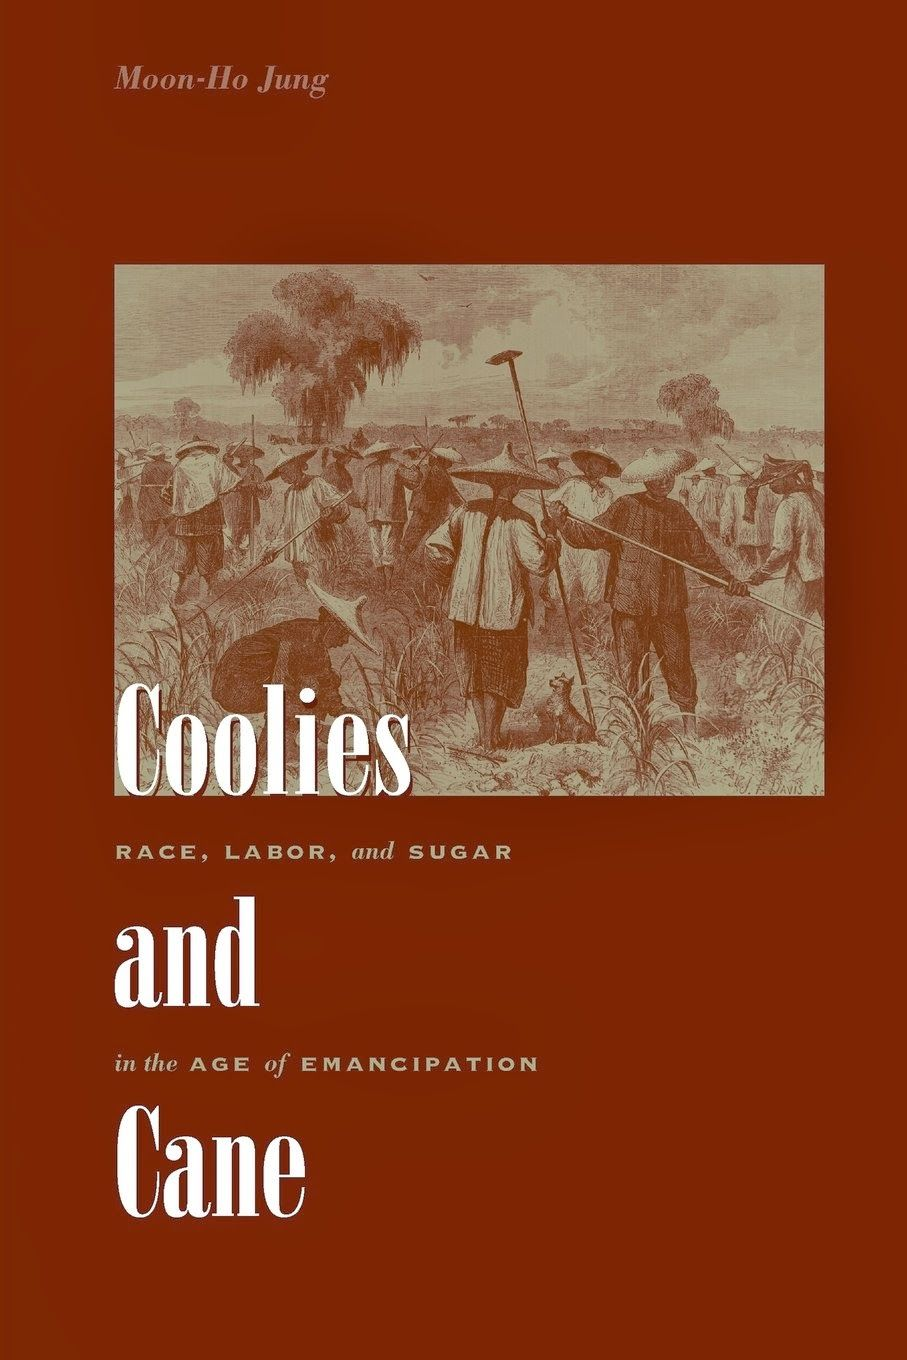 Coolies and Cane Chinese in America Book Blog #Histocrats